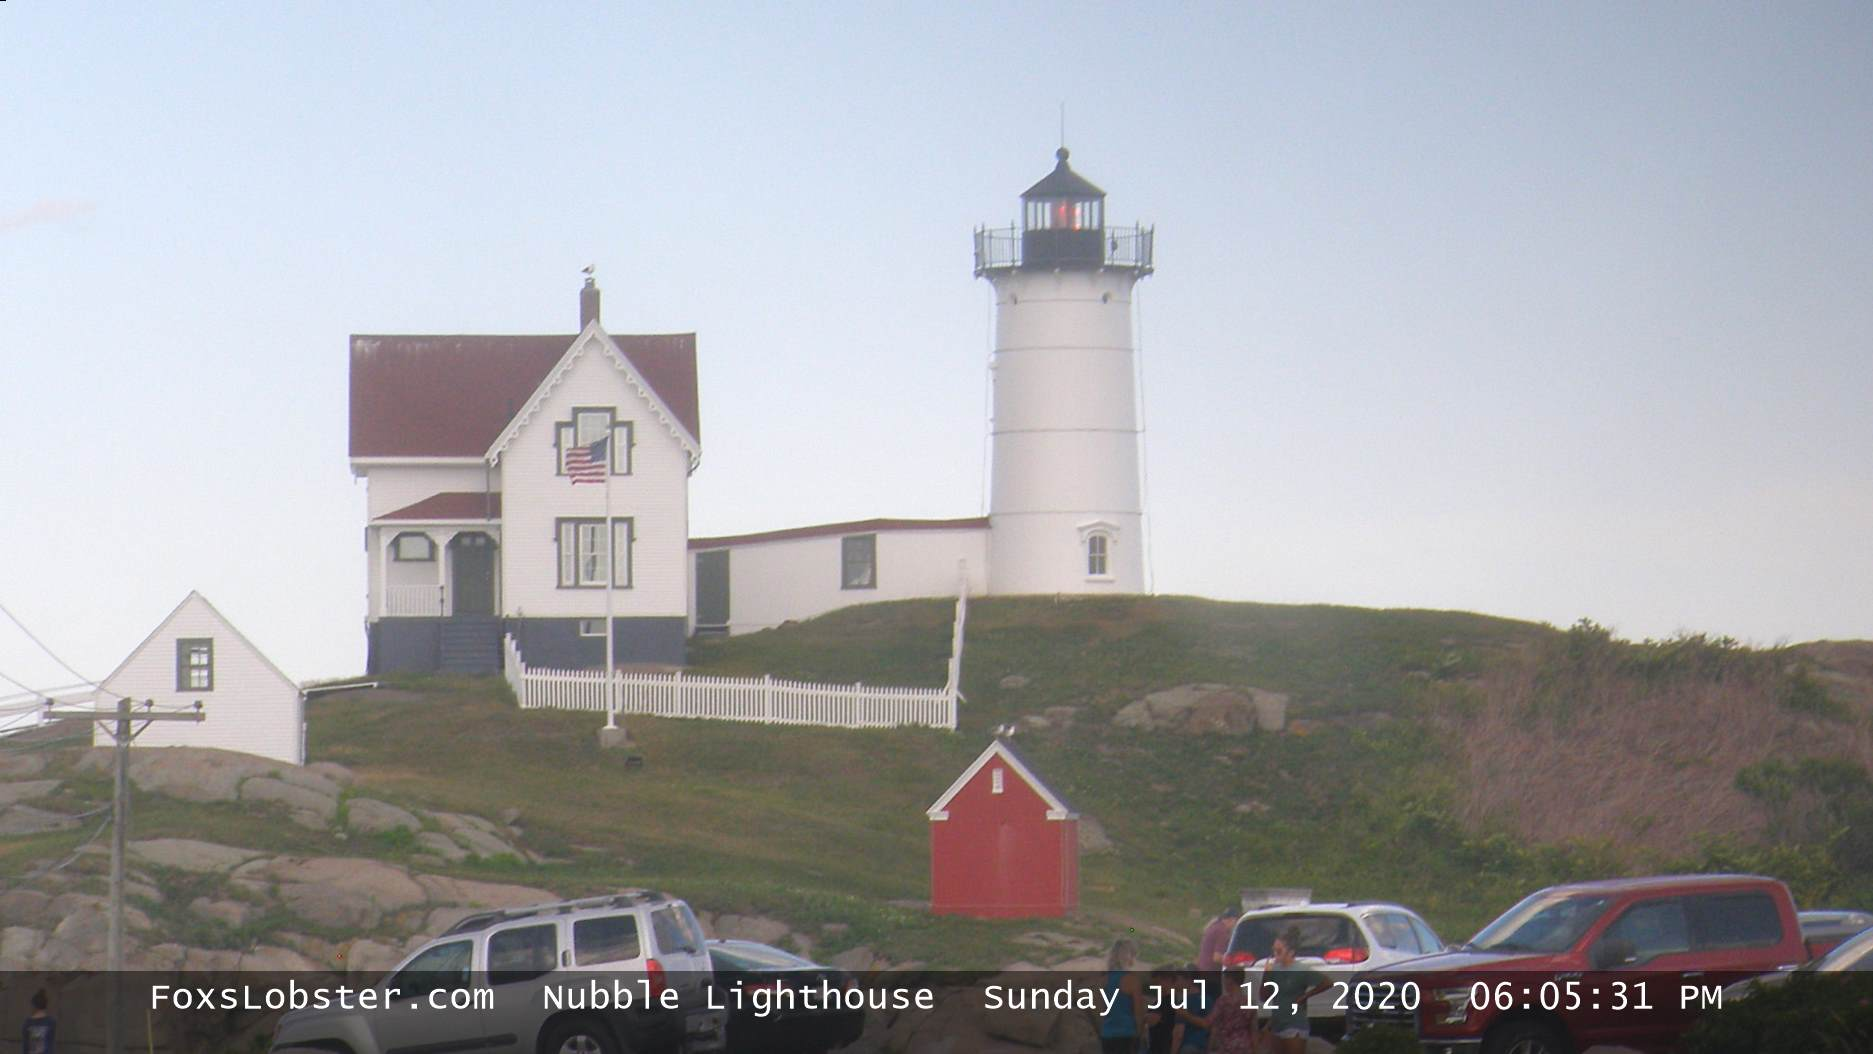 York Nubble Lighthouse Webcam Image